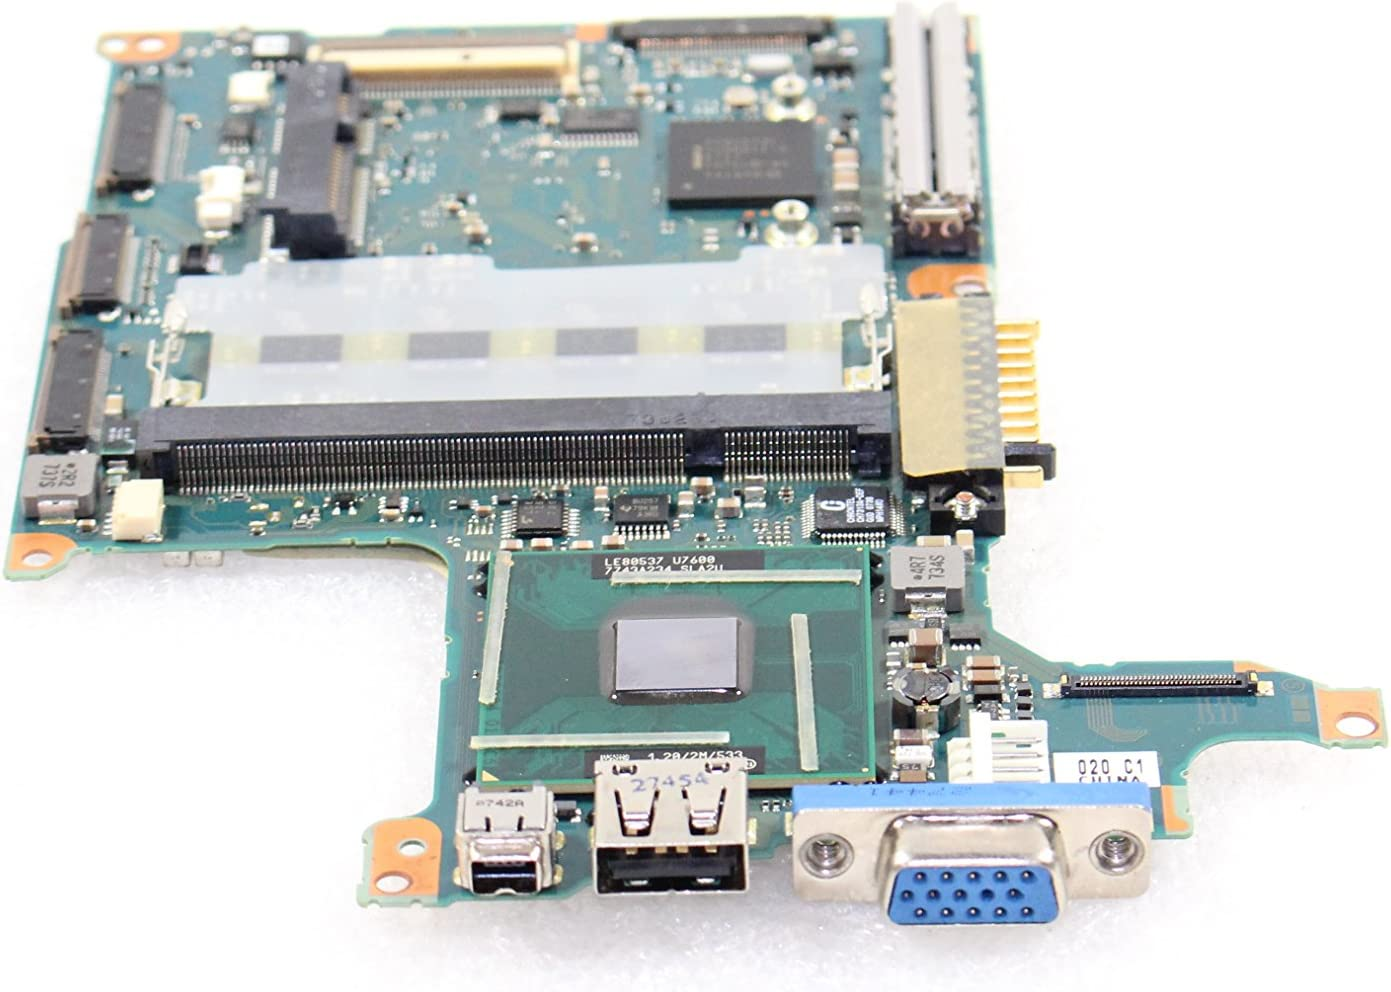 Brand New 1.20GHz Main Board MotherBoard For Toshiba R500 Series R505 Series P000489860